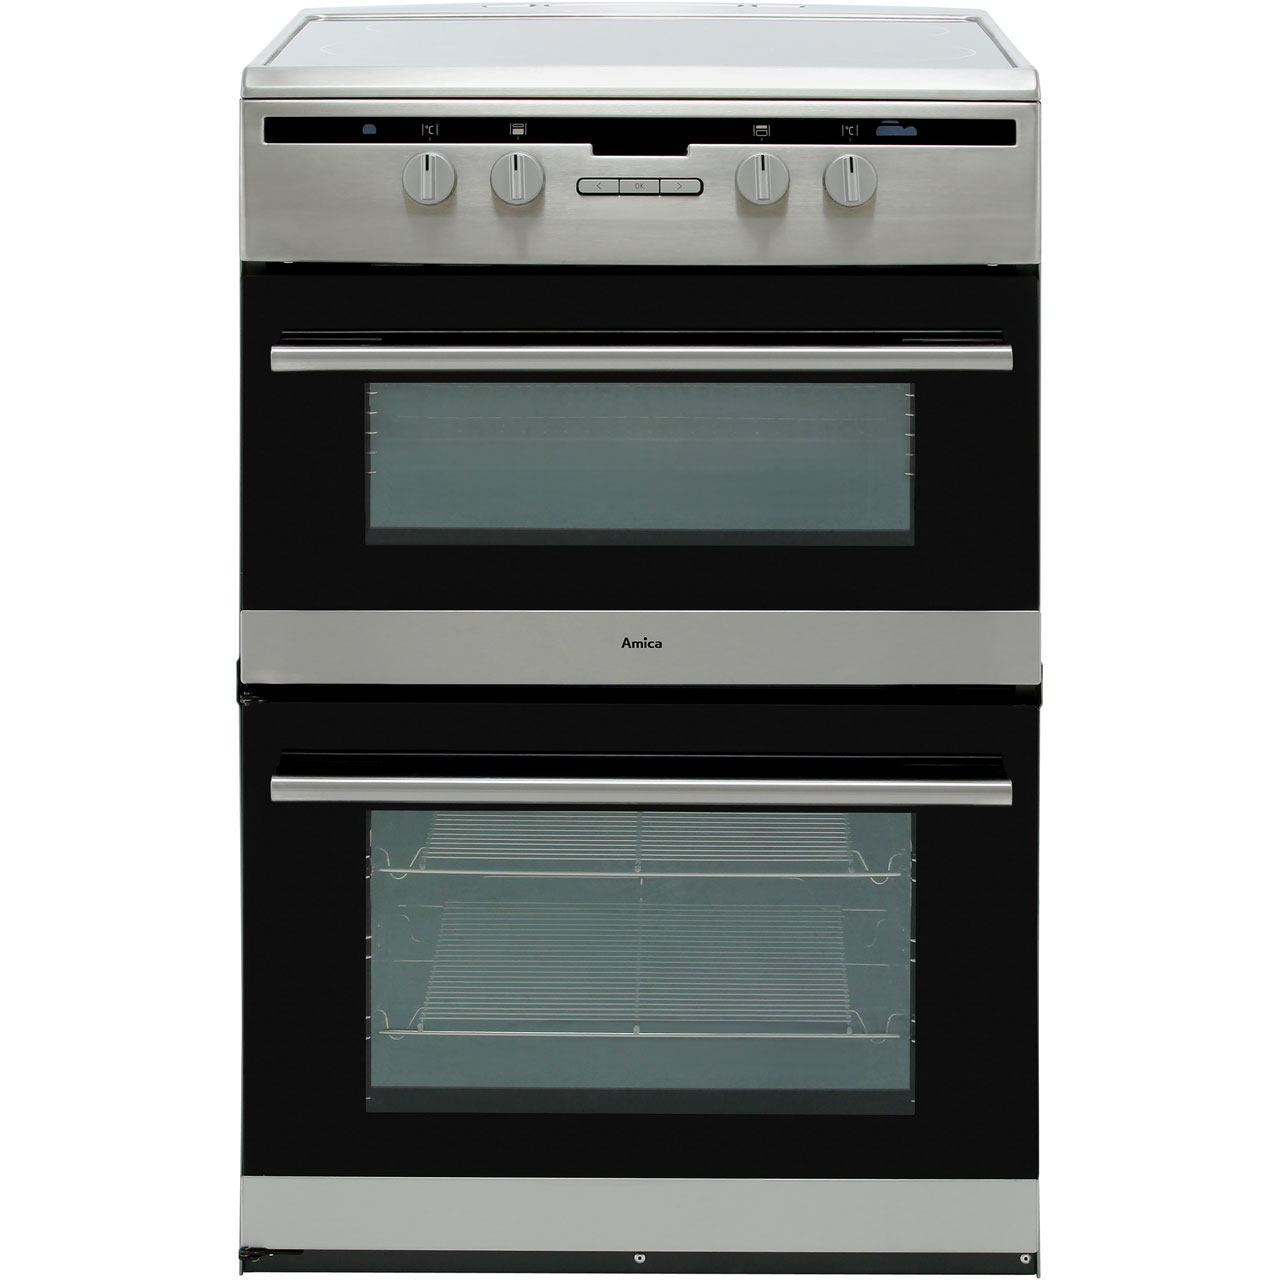 Amica AFN6550SS 60cm Electric Cooker with Induction Hob - Stainless on